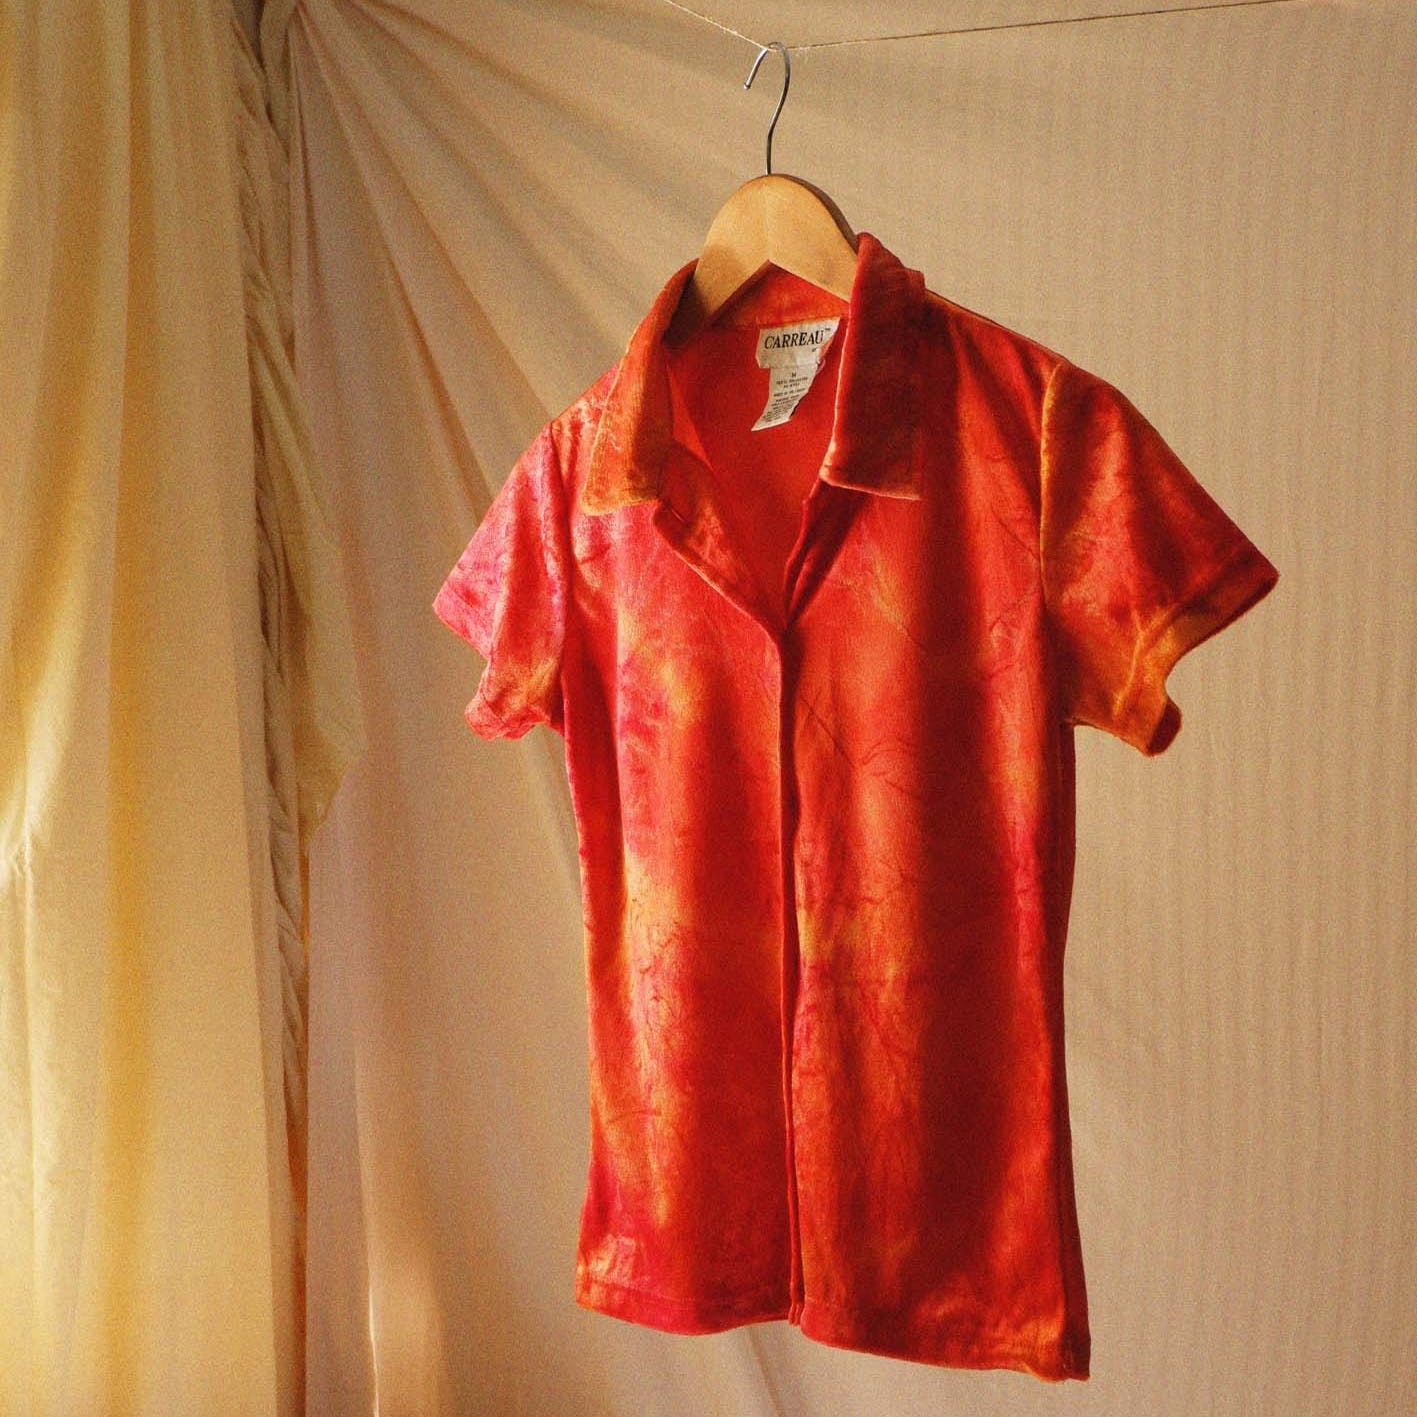 Clothing,Red,Product,Orange,Outerwear,Clothes hanger,Textile,Sleeve,Day dress,Silk